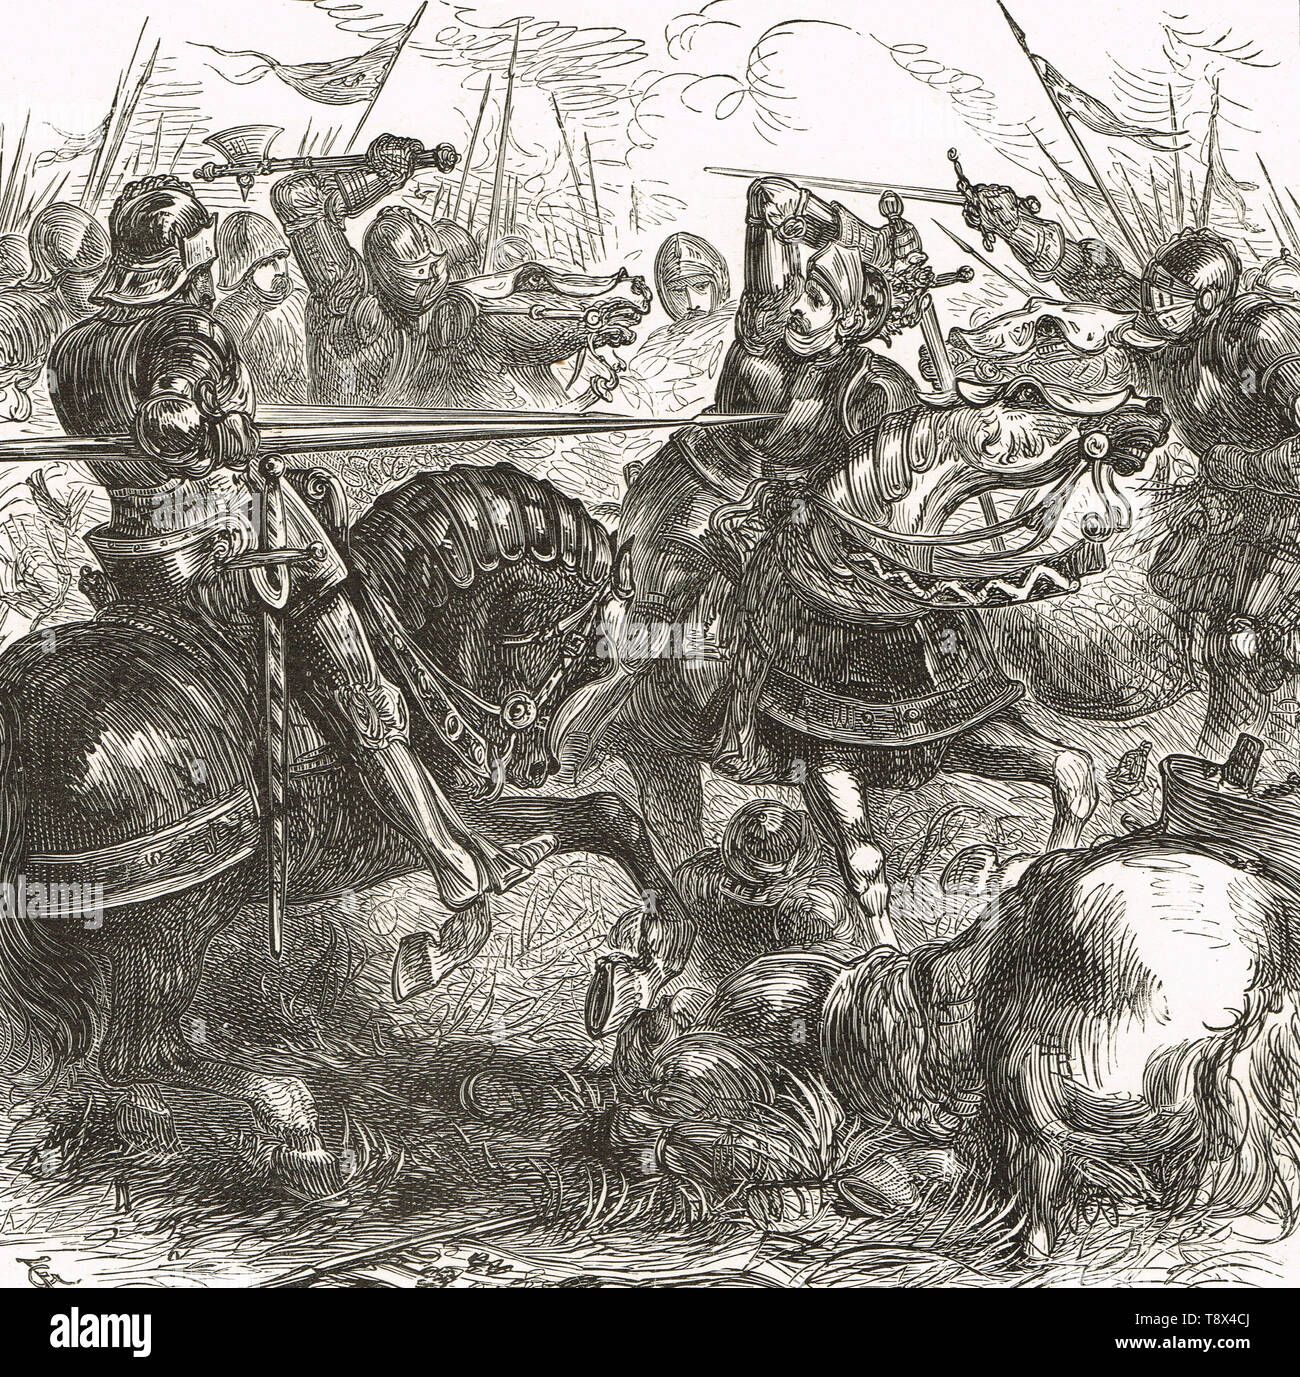 Richard III fighting at the Battle of Bosworth Field, 22 August 1485 - Stock Image